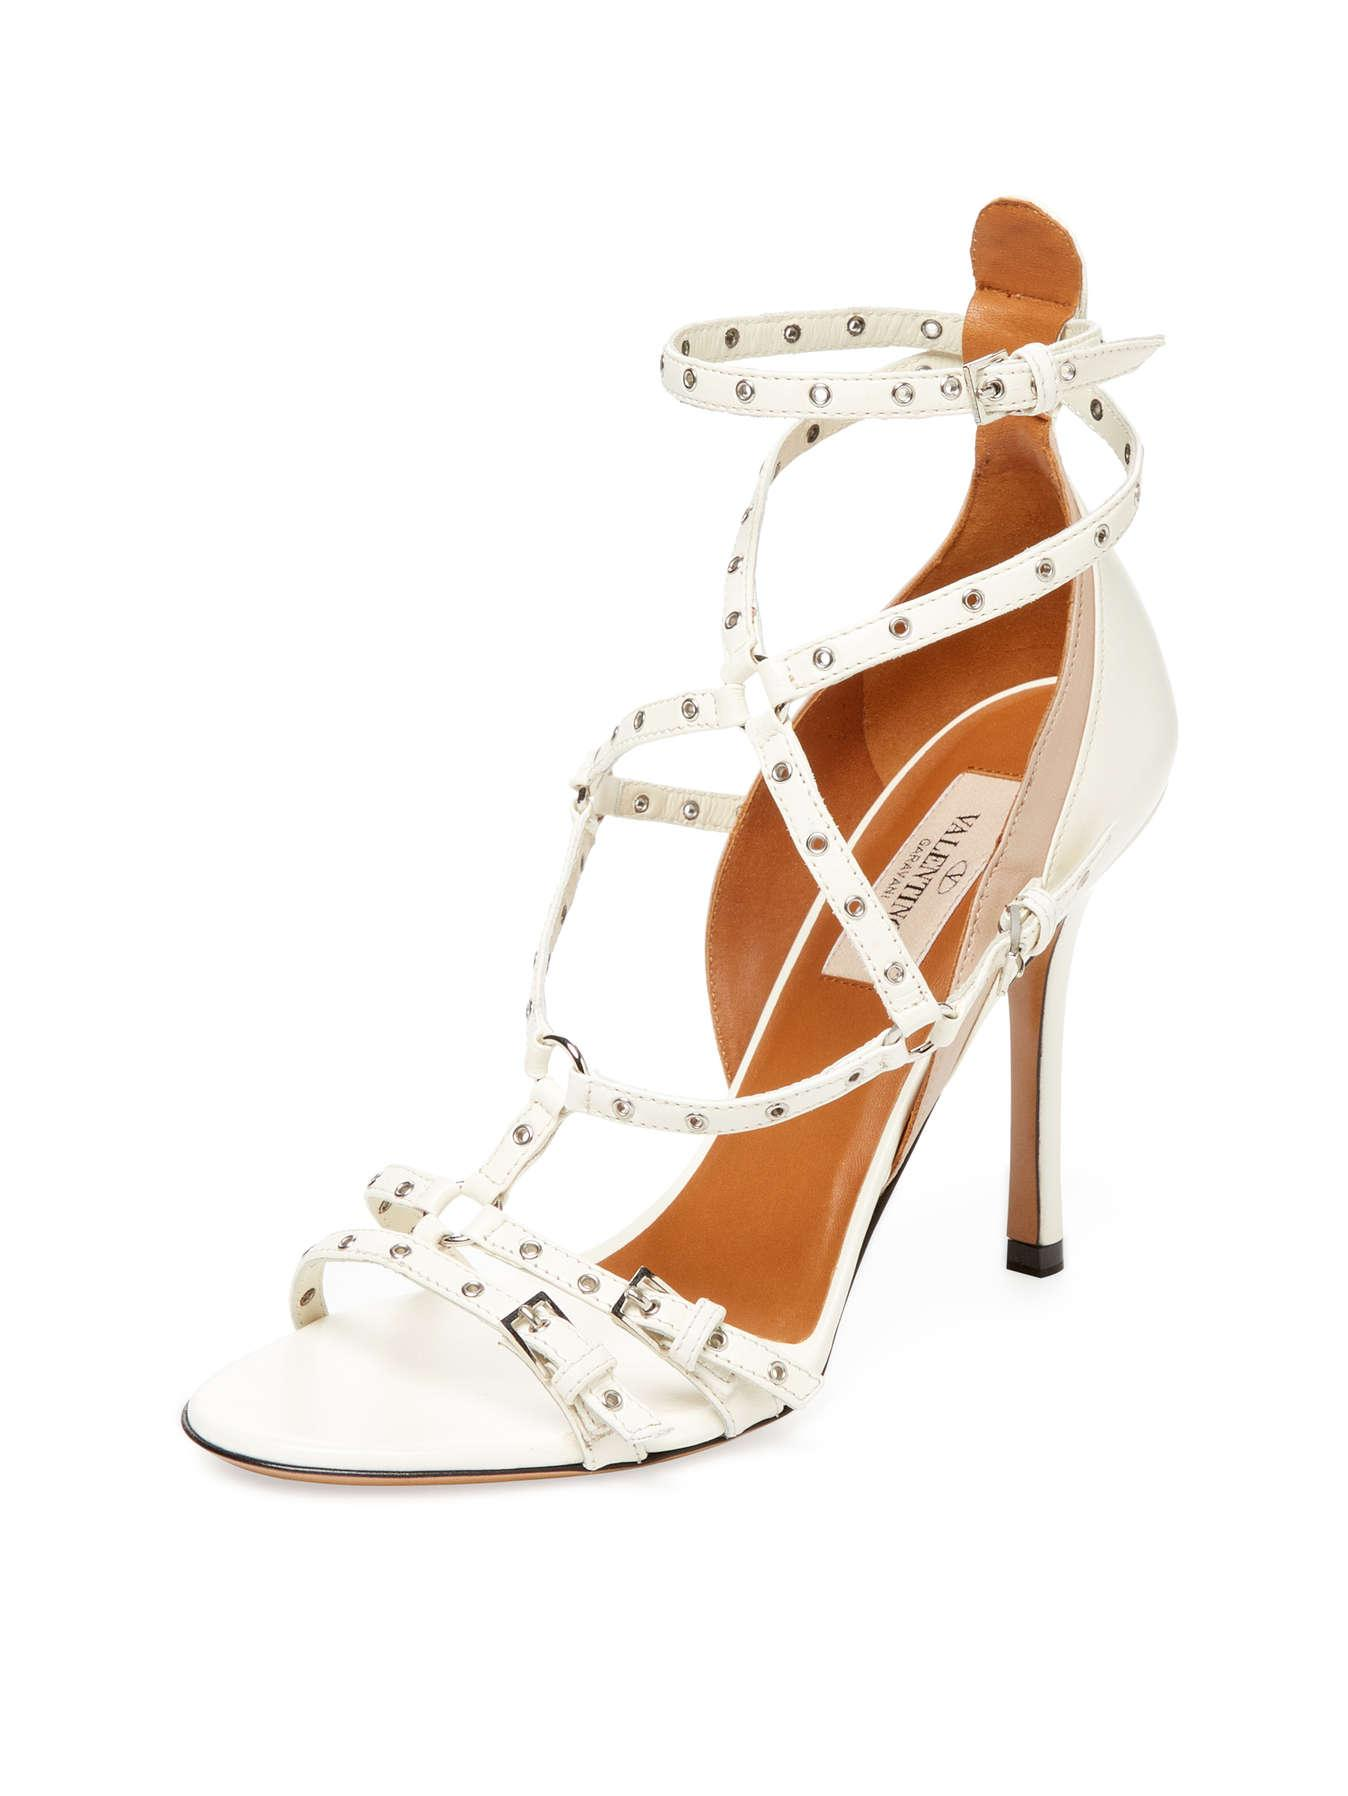 Valentino Valentino Valentino Light Ivory/Poudre Love Latch Leather Sandal Pumps Size US 8 Regular (M, B) ed3c5d